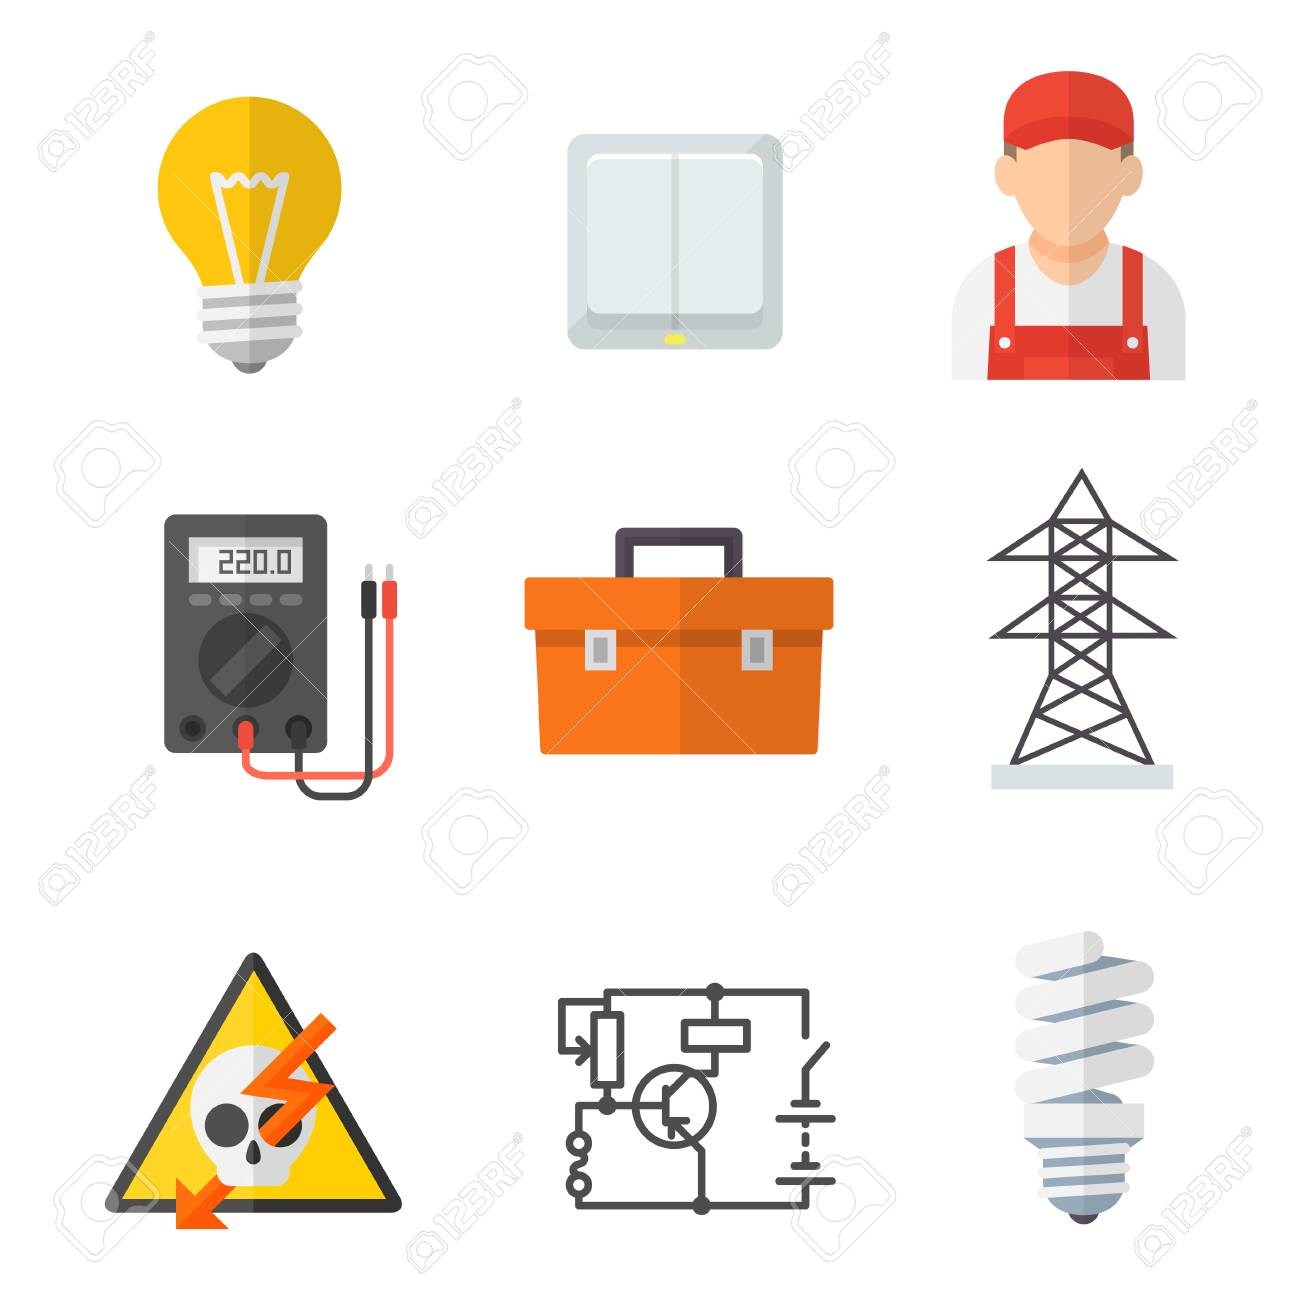 hight resolution of electrician industry icon cartoon set tradesperson electrical wiring of buildings systems and equipment